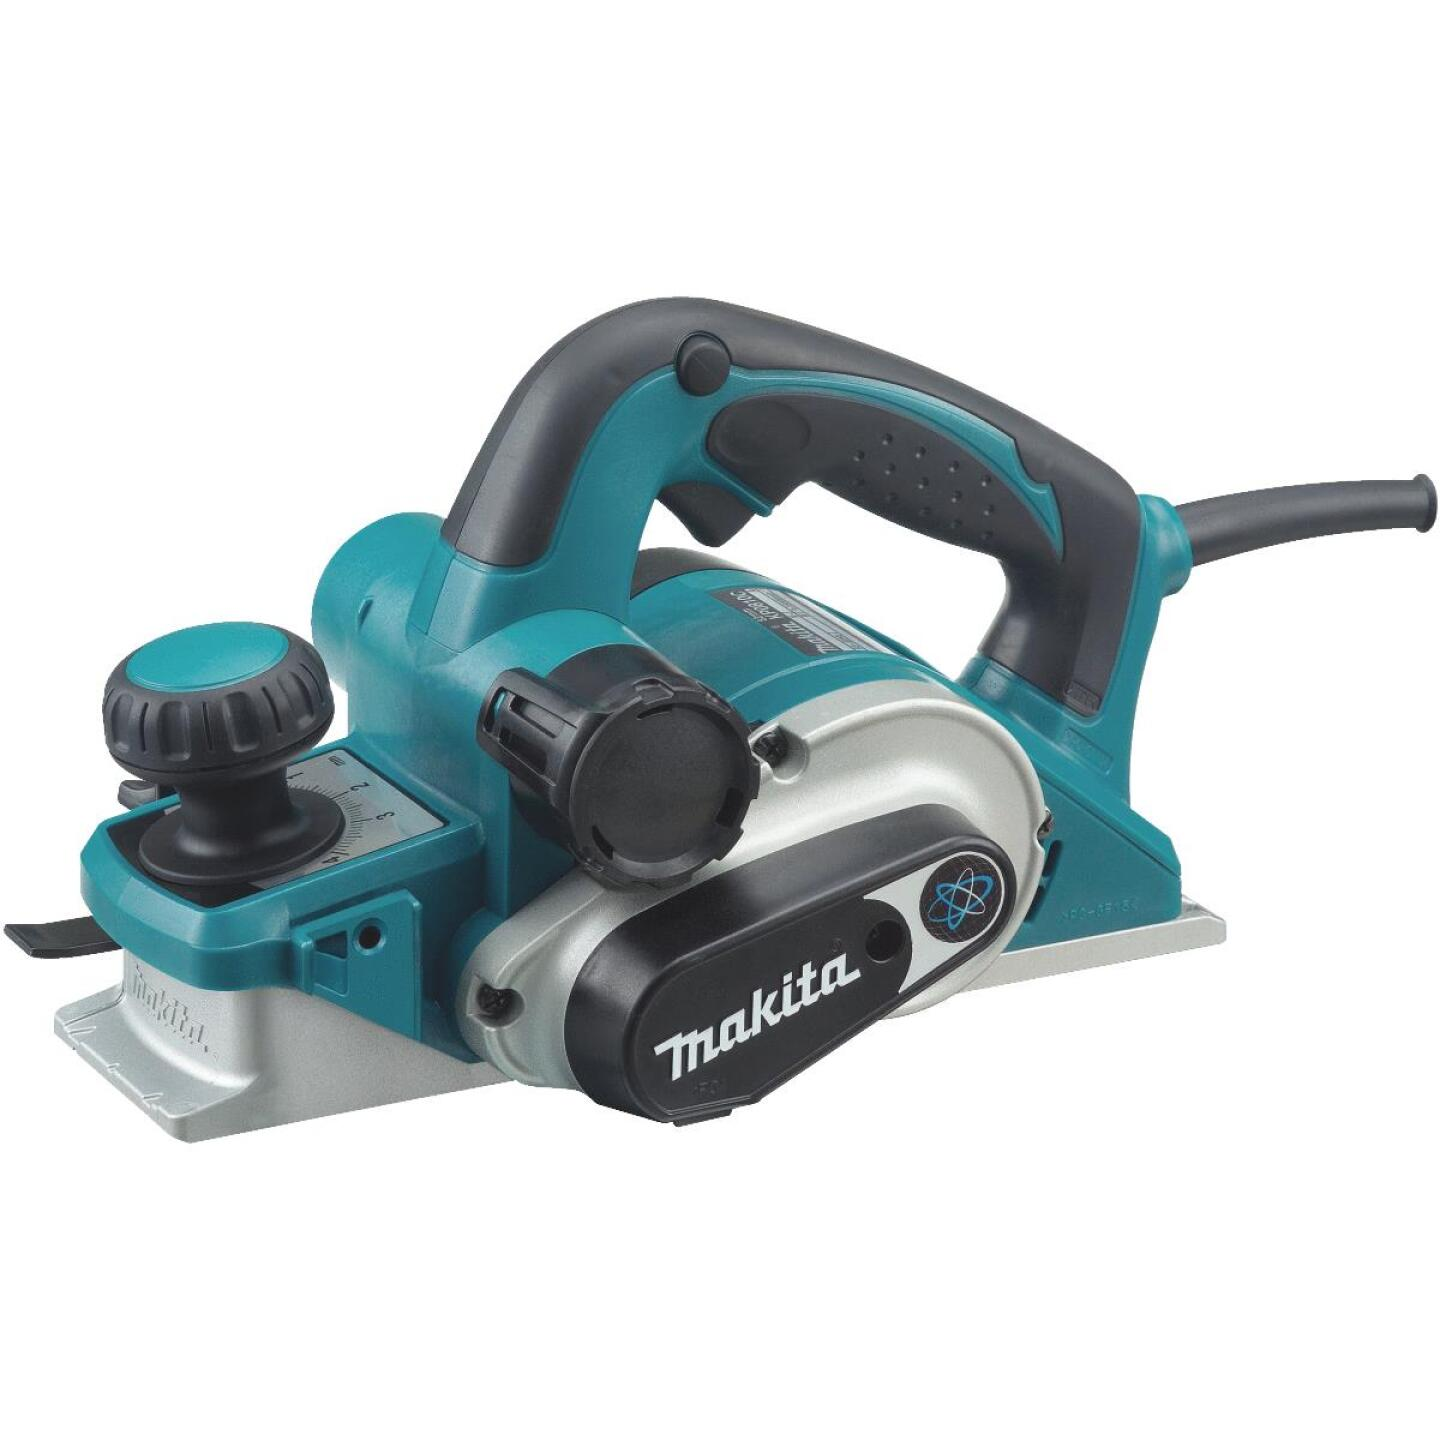 Makita 7.5A 3-1/4 In. 5/32 In. Planing Depth Planer Image 1